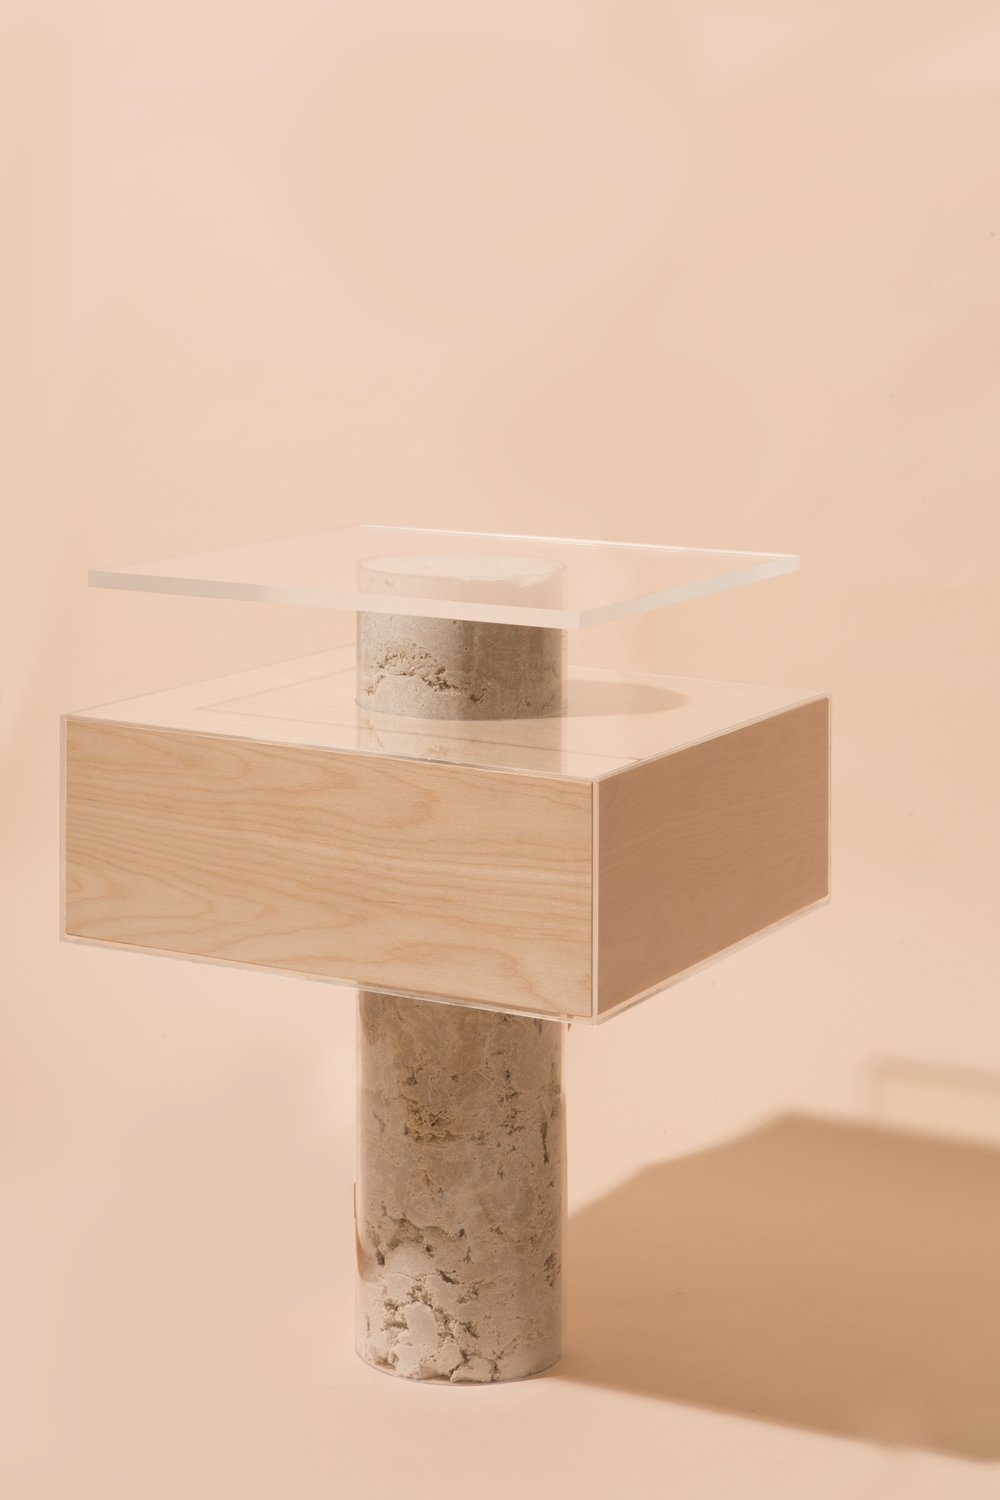 MARLAND TABLE (16 of 18).jpg